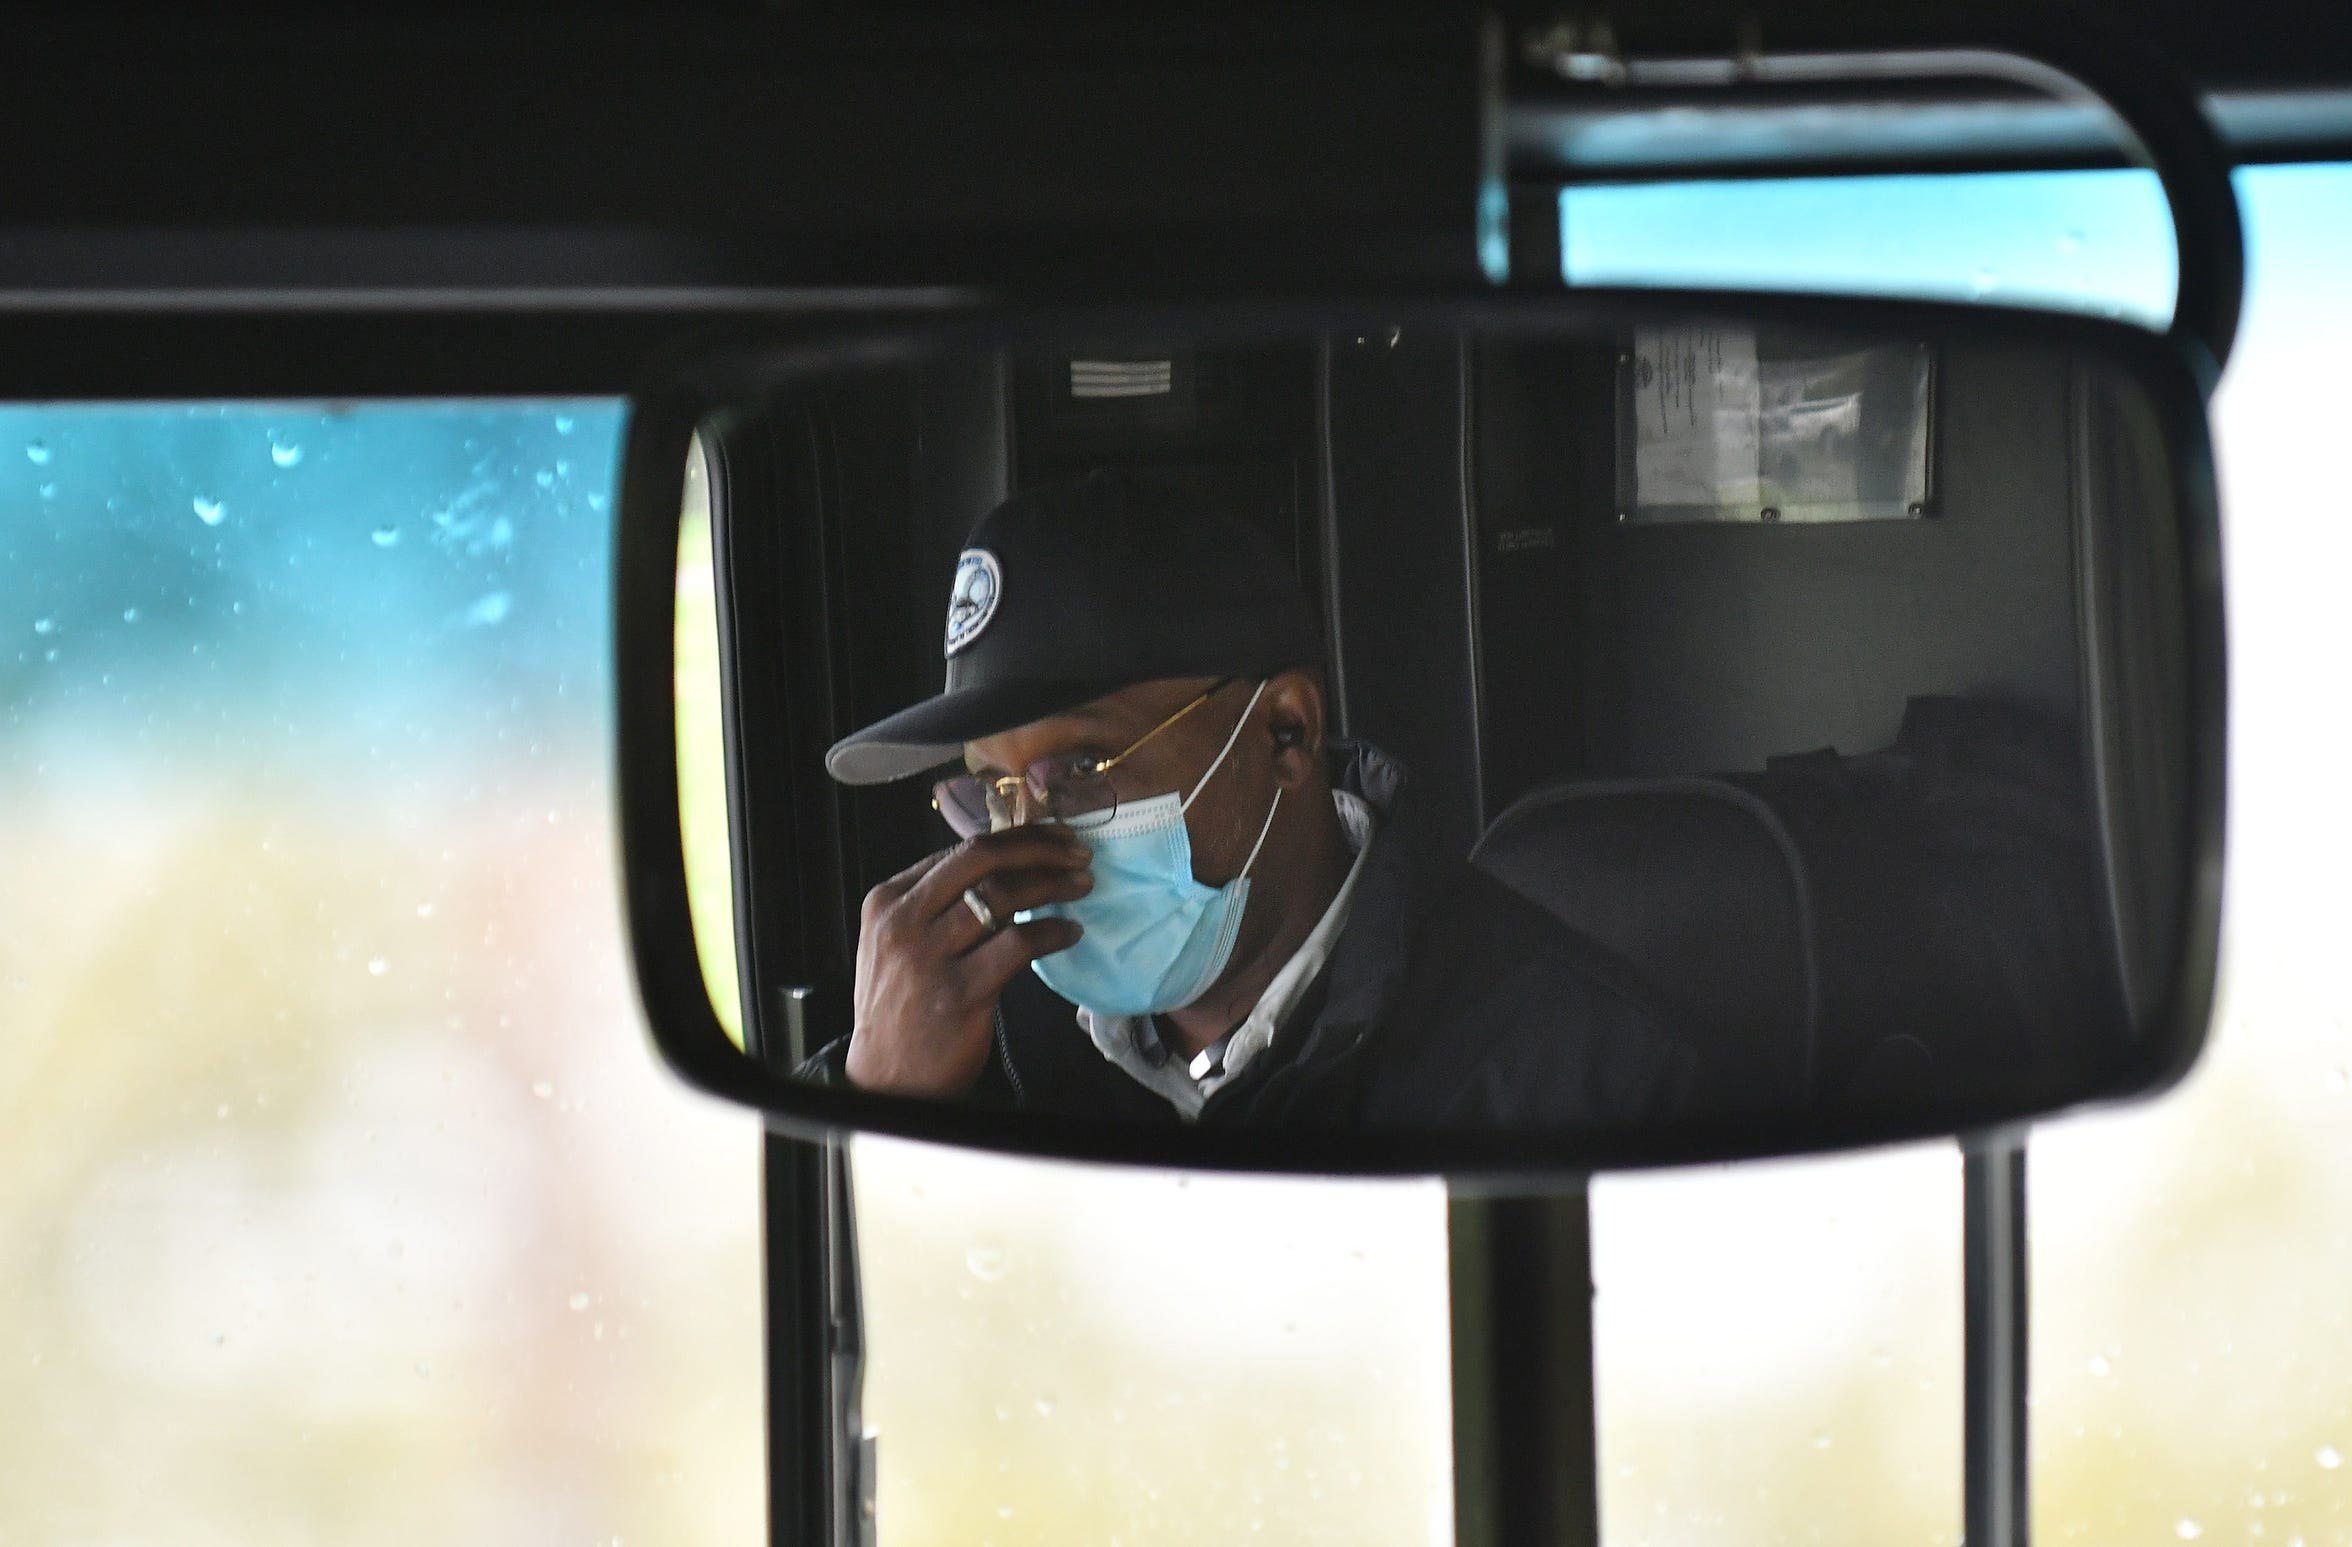 Andrew Love drives the 17 bus on Eight Mile Road in Detroit on May 18, 2020. To protect the health and safety of its customers and employees, DDOT is temporarily suspending fare collection for all trips and requesting that customers limit non-essential bus travel until further notice.